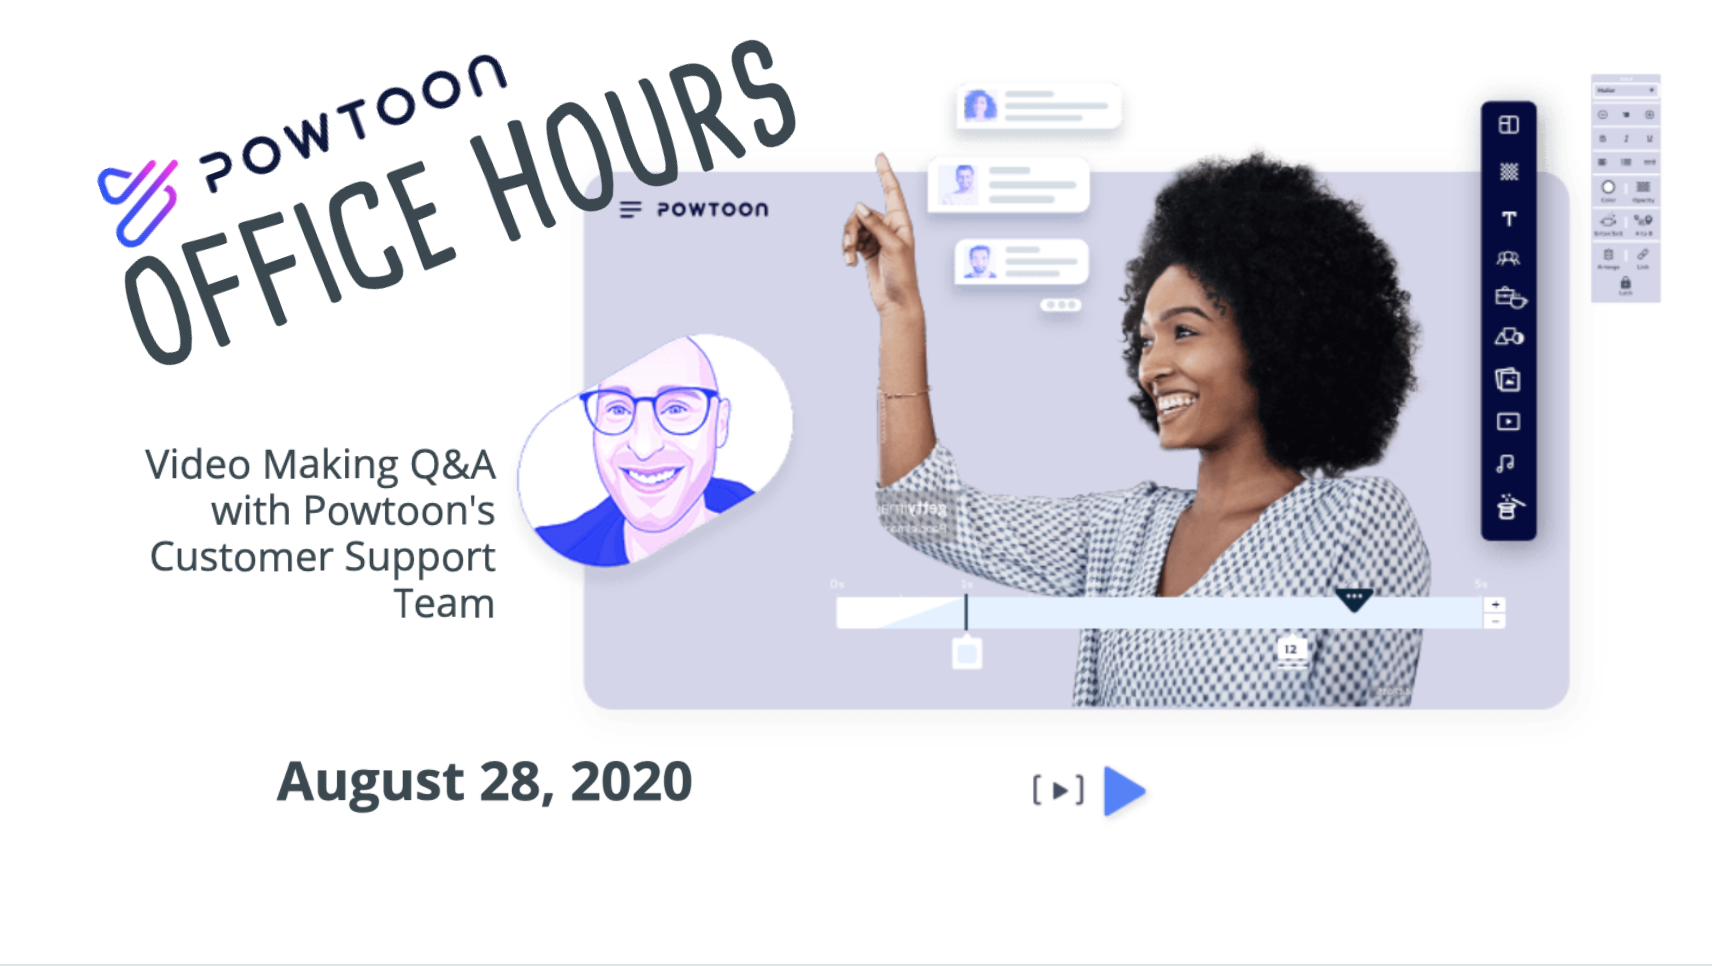 powtoon office hours, on-demand webinar video making q+a